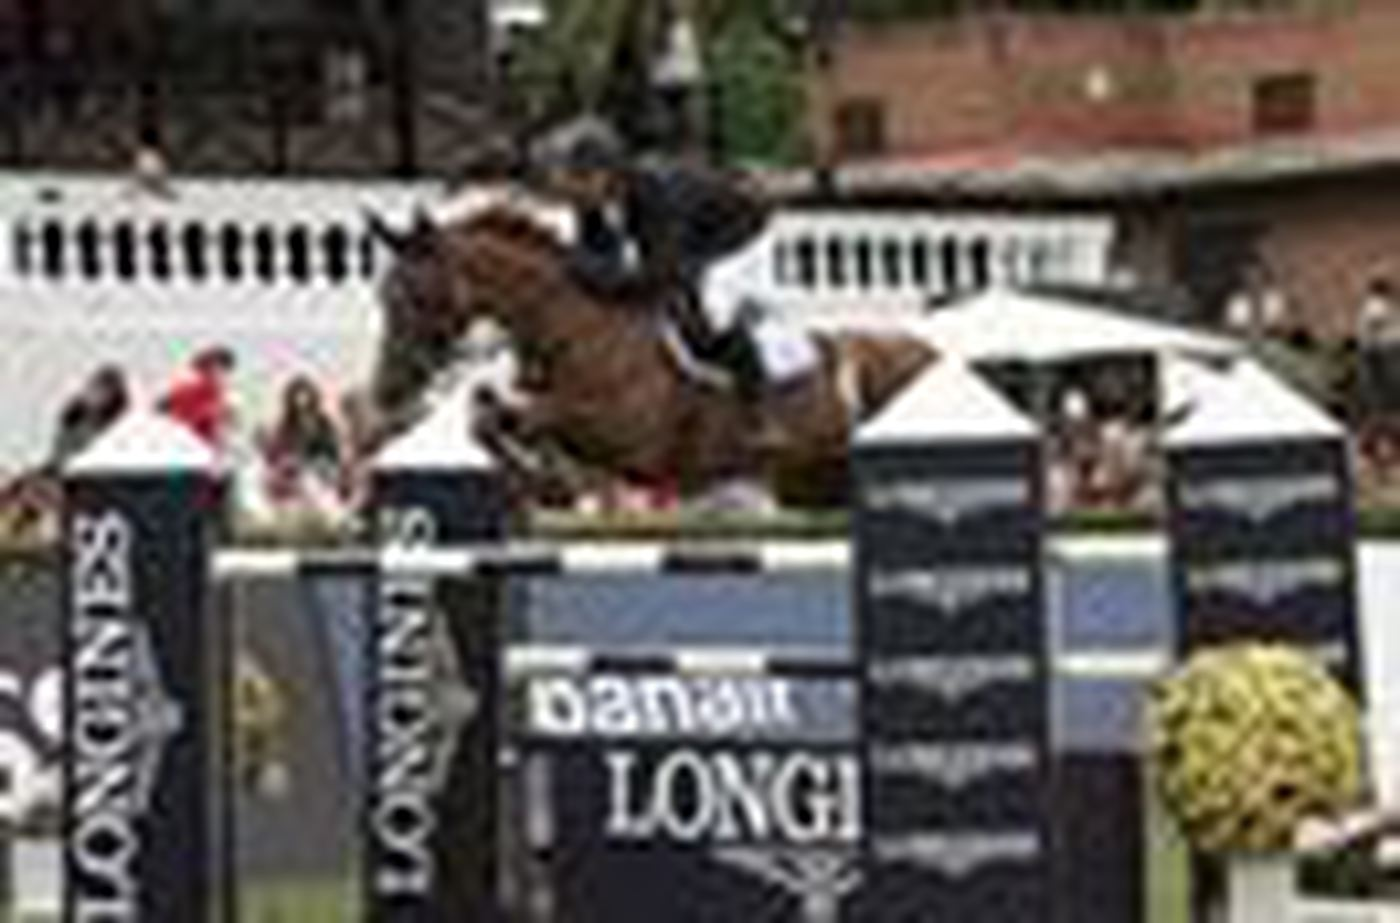 Longines Show Jumping Event: CSIO Barcelona 1